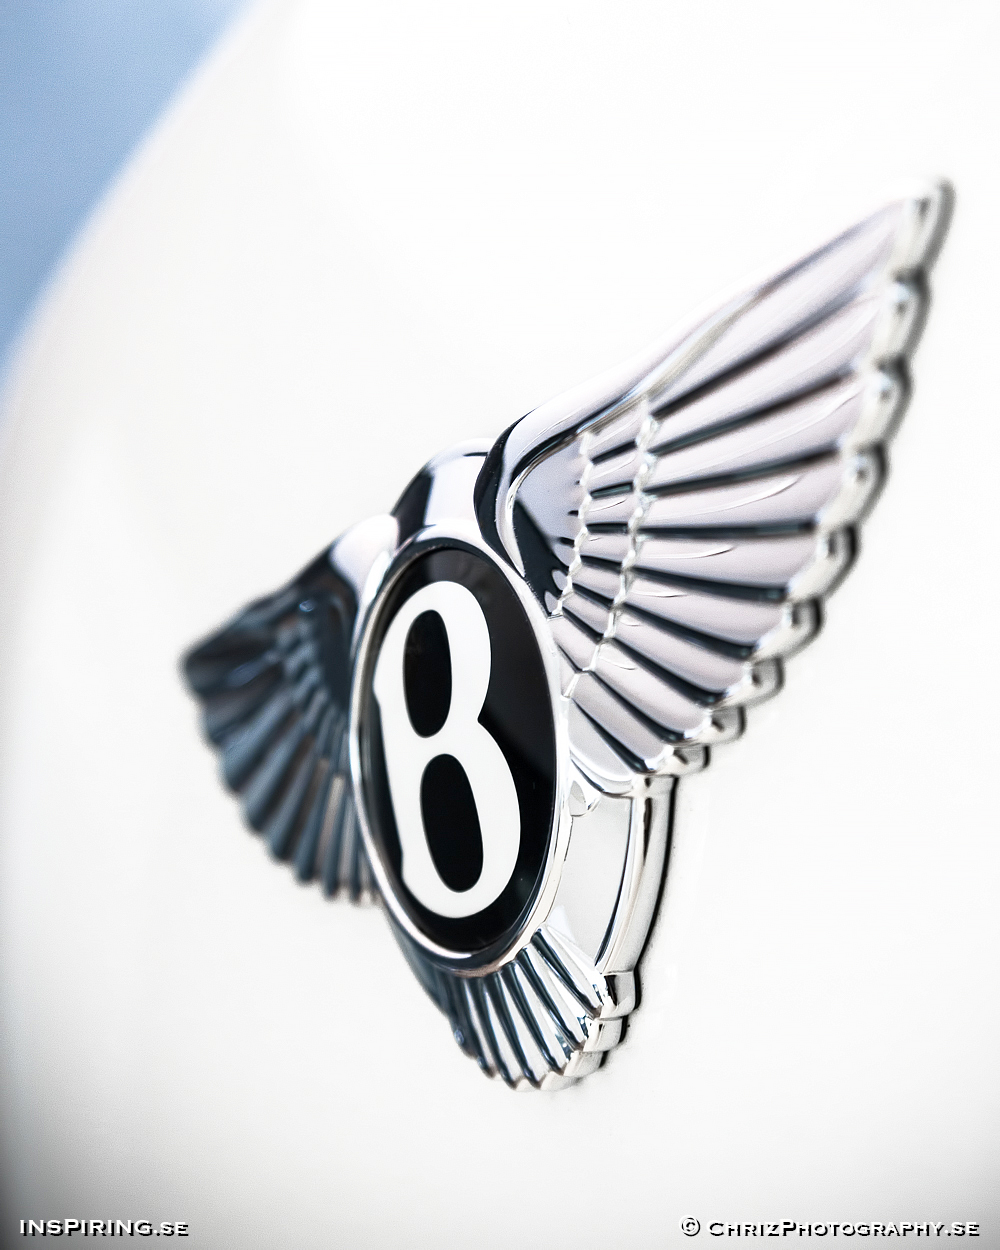 Inspiring.se_OUTTHERE_copyright_ChrizPhotography.se_621_BentleyContinentalGTSpeed copy.jpg